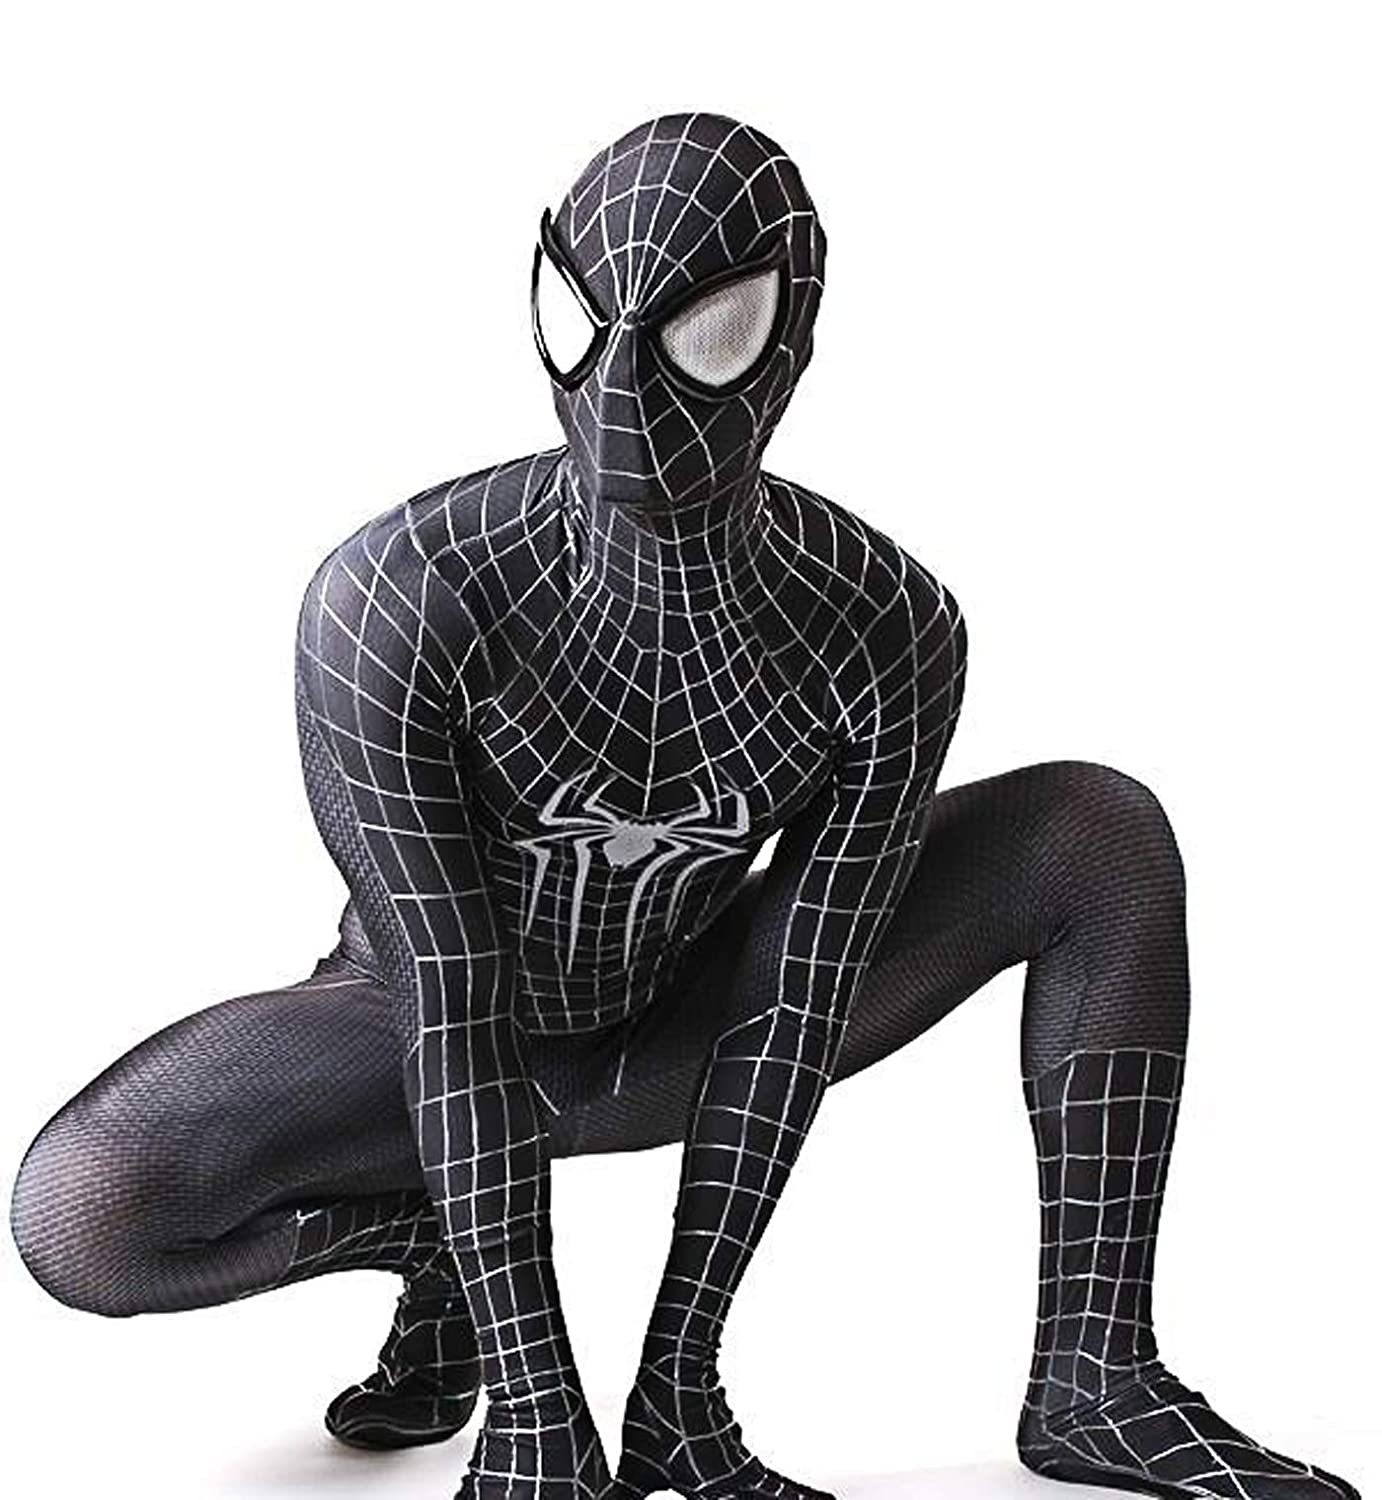 Amazon.com: Disfraz de Spiderman para Halloween, de licra ...